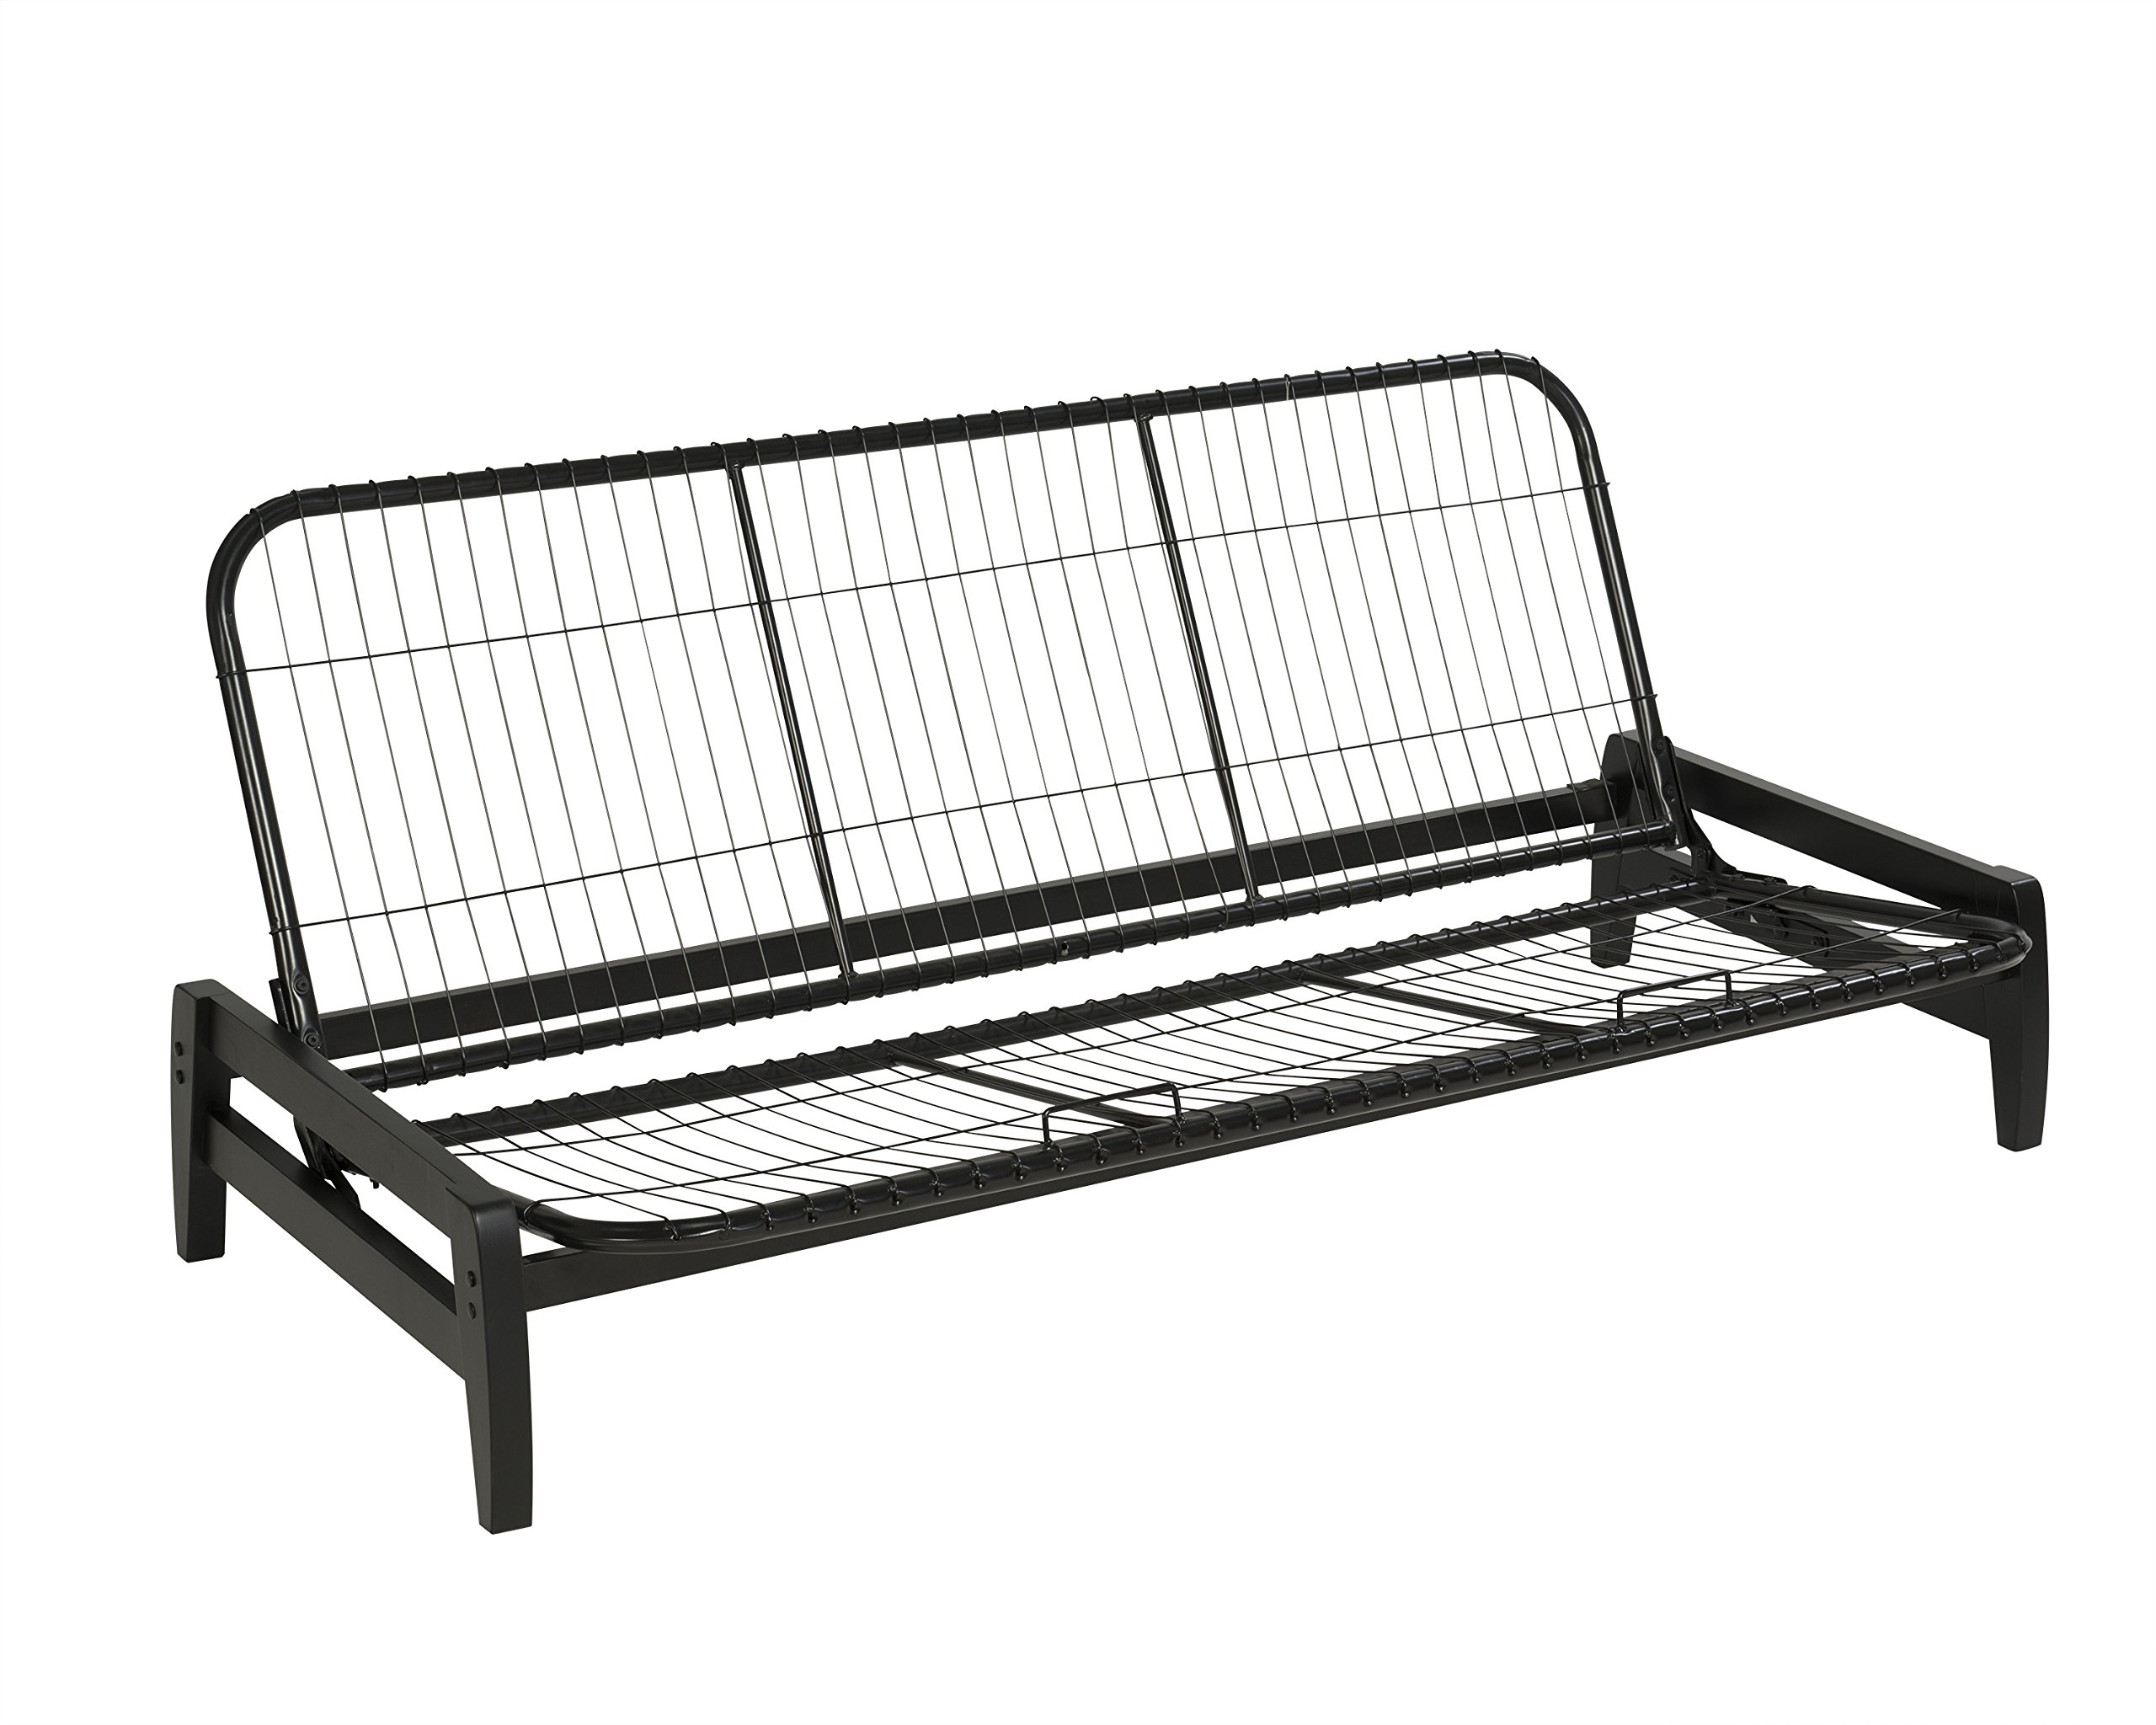 Serta Phoenix Futon Frame, Queen, Black by WOLF